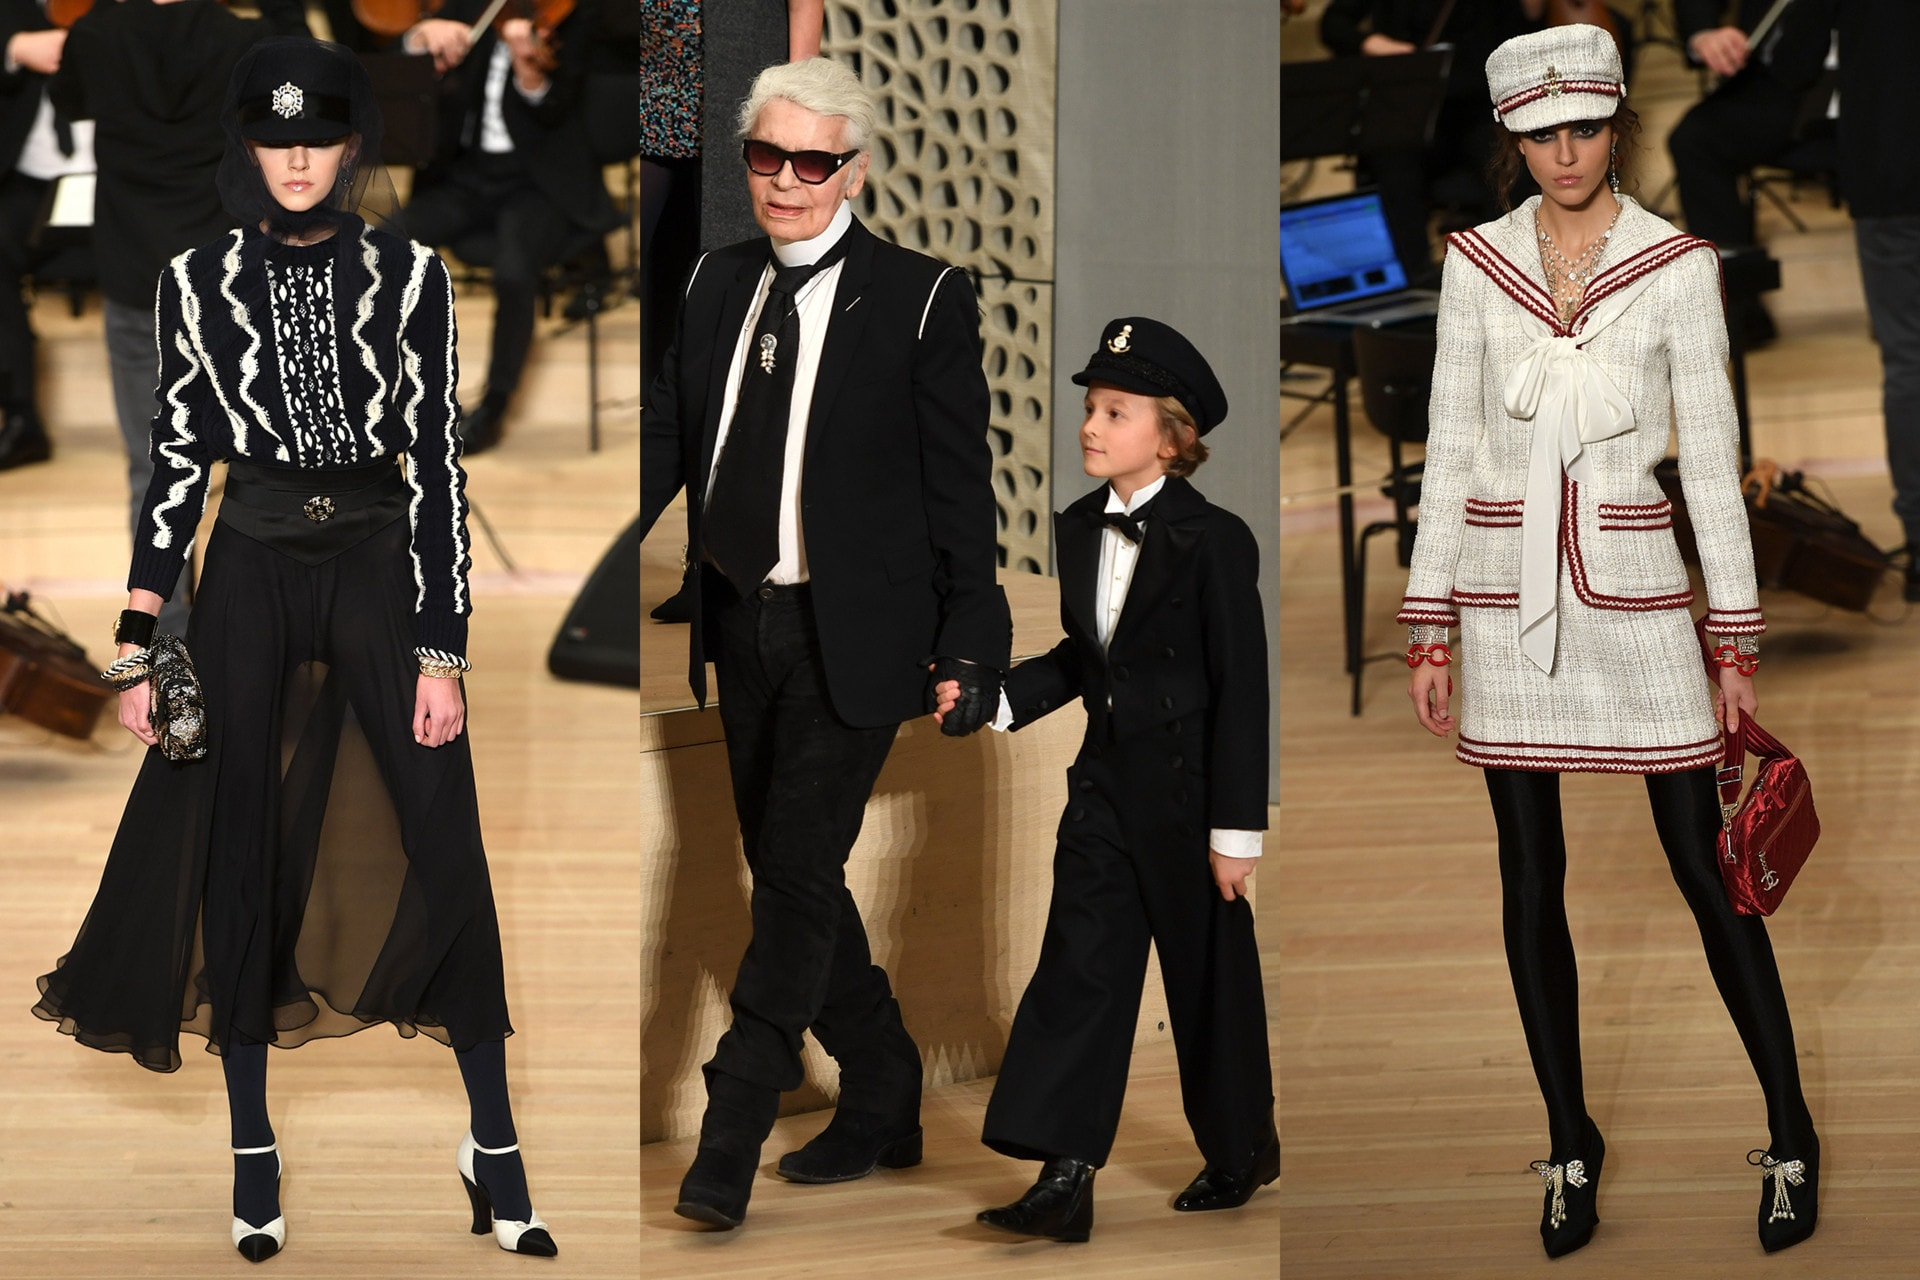 The biggest fashion trends to know from Chanel's Métiers d'Art show in Hamburg